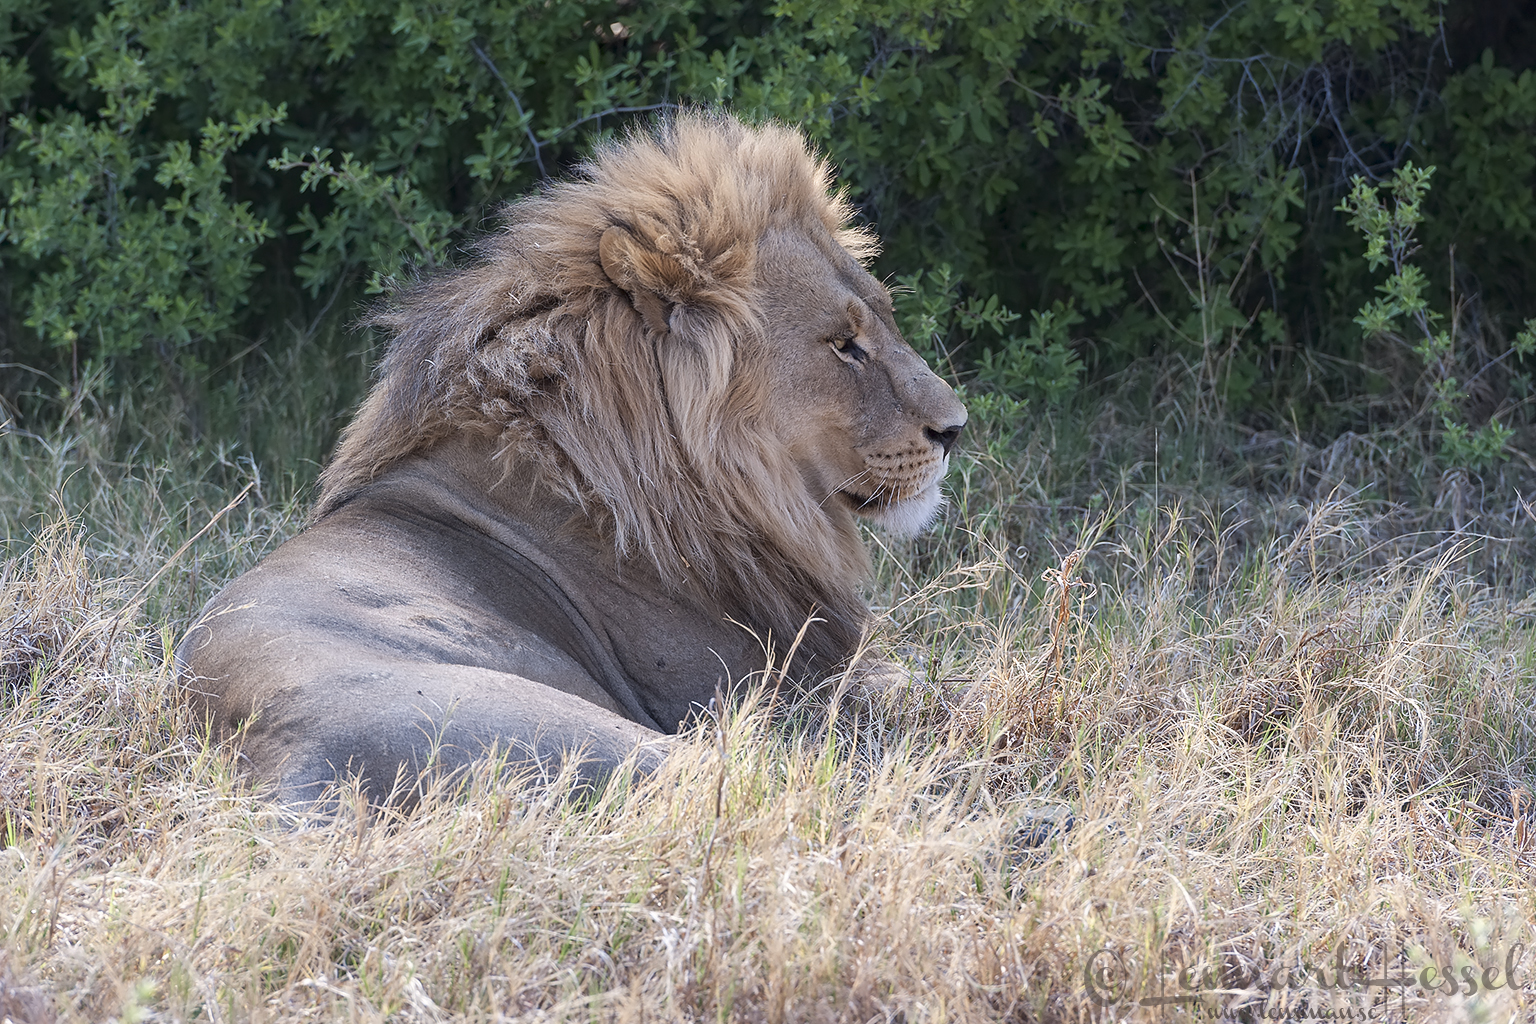 Lion portrait in Khwai Community Area, Botswana